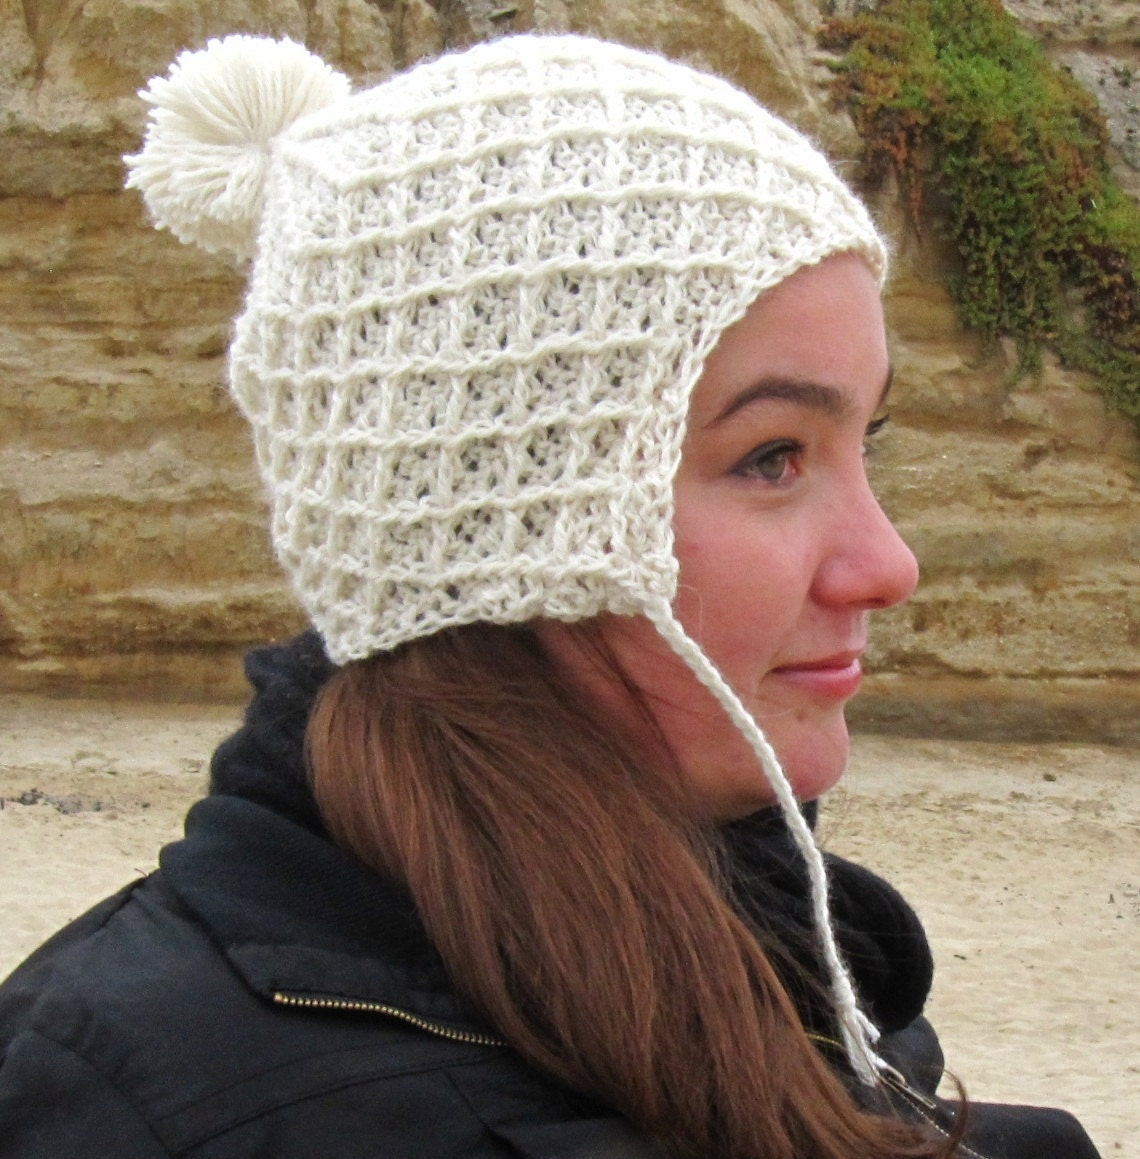 New crochet hat pattern available in the shop knits for life bankloansurffo Gallery